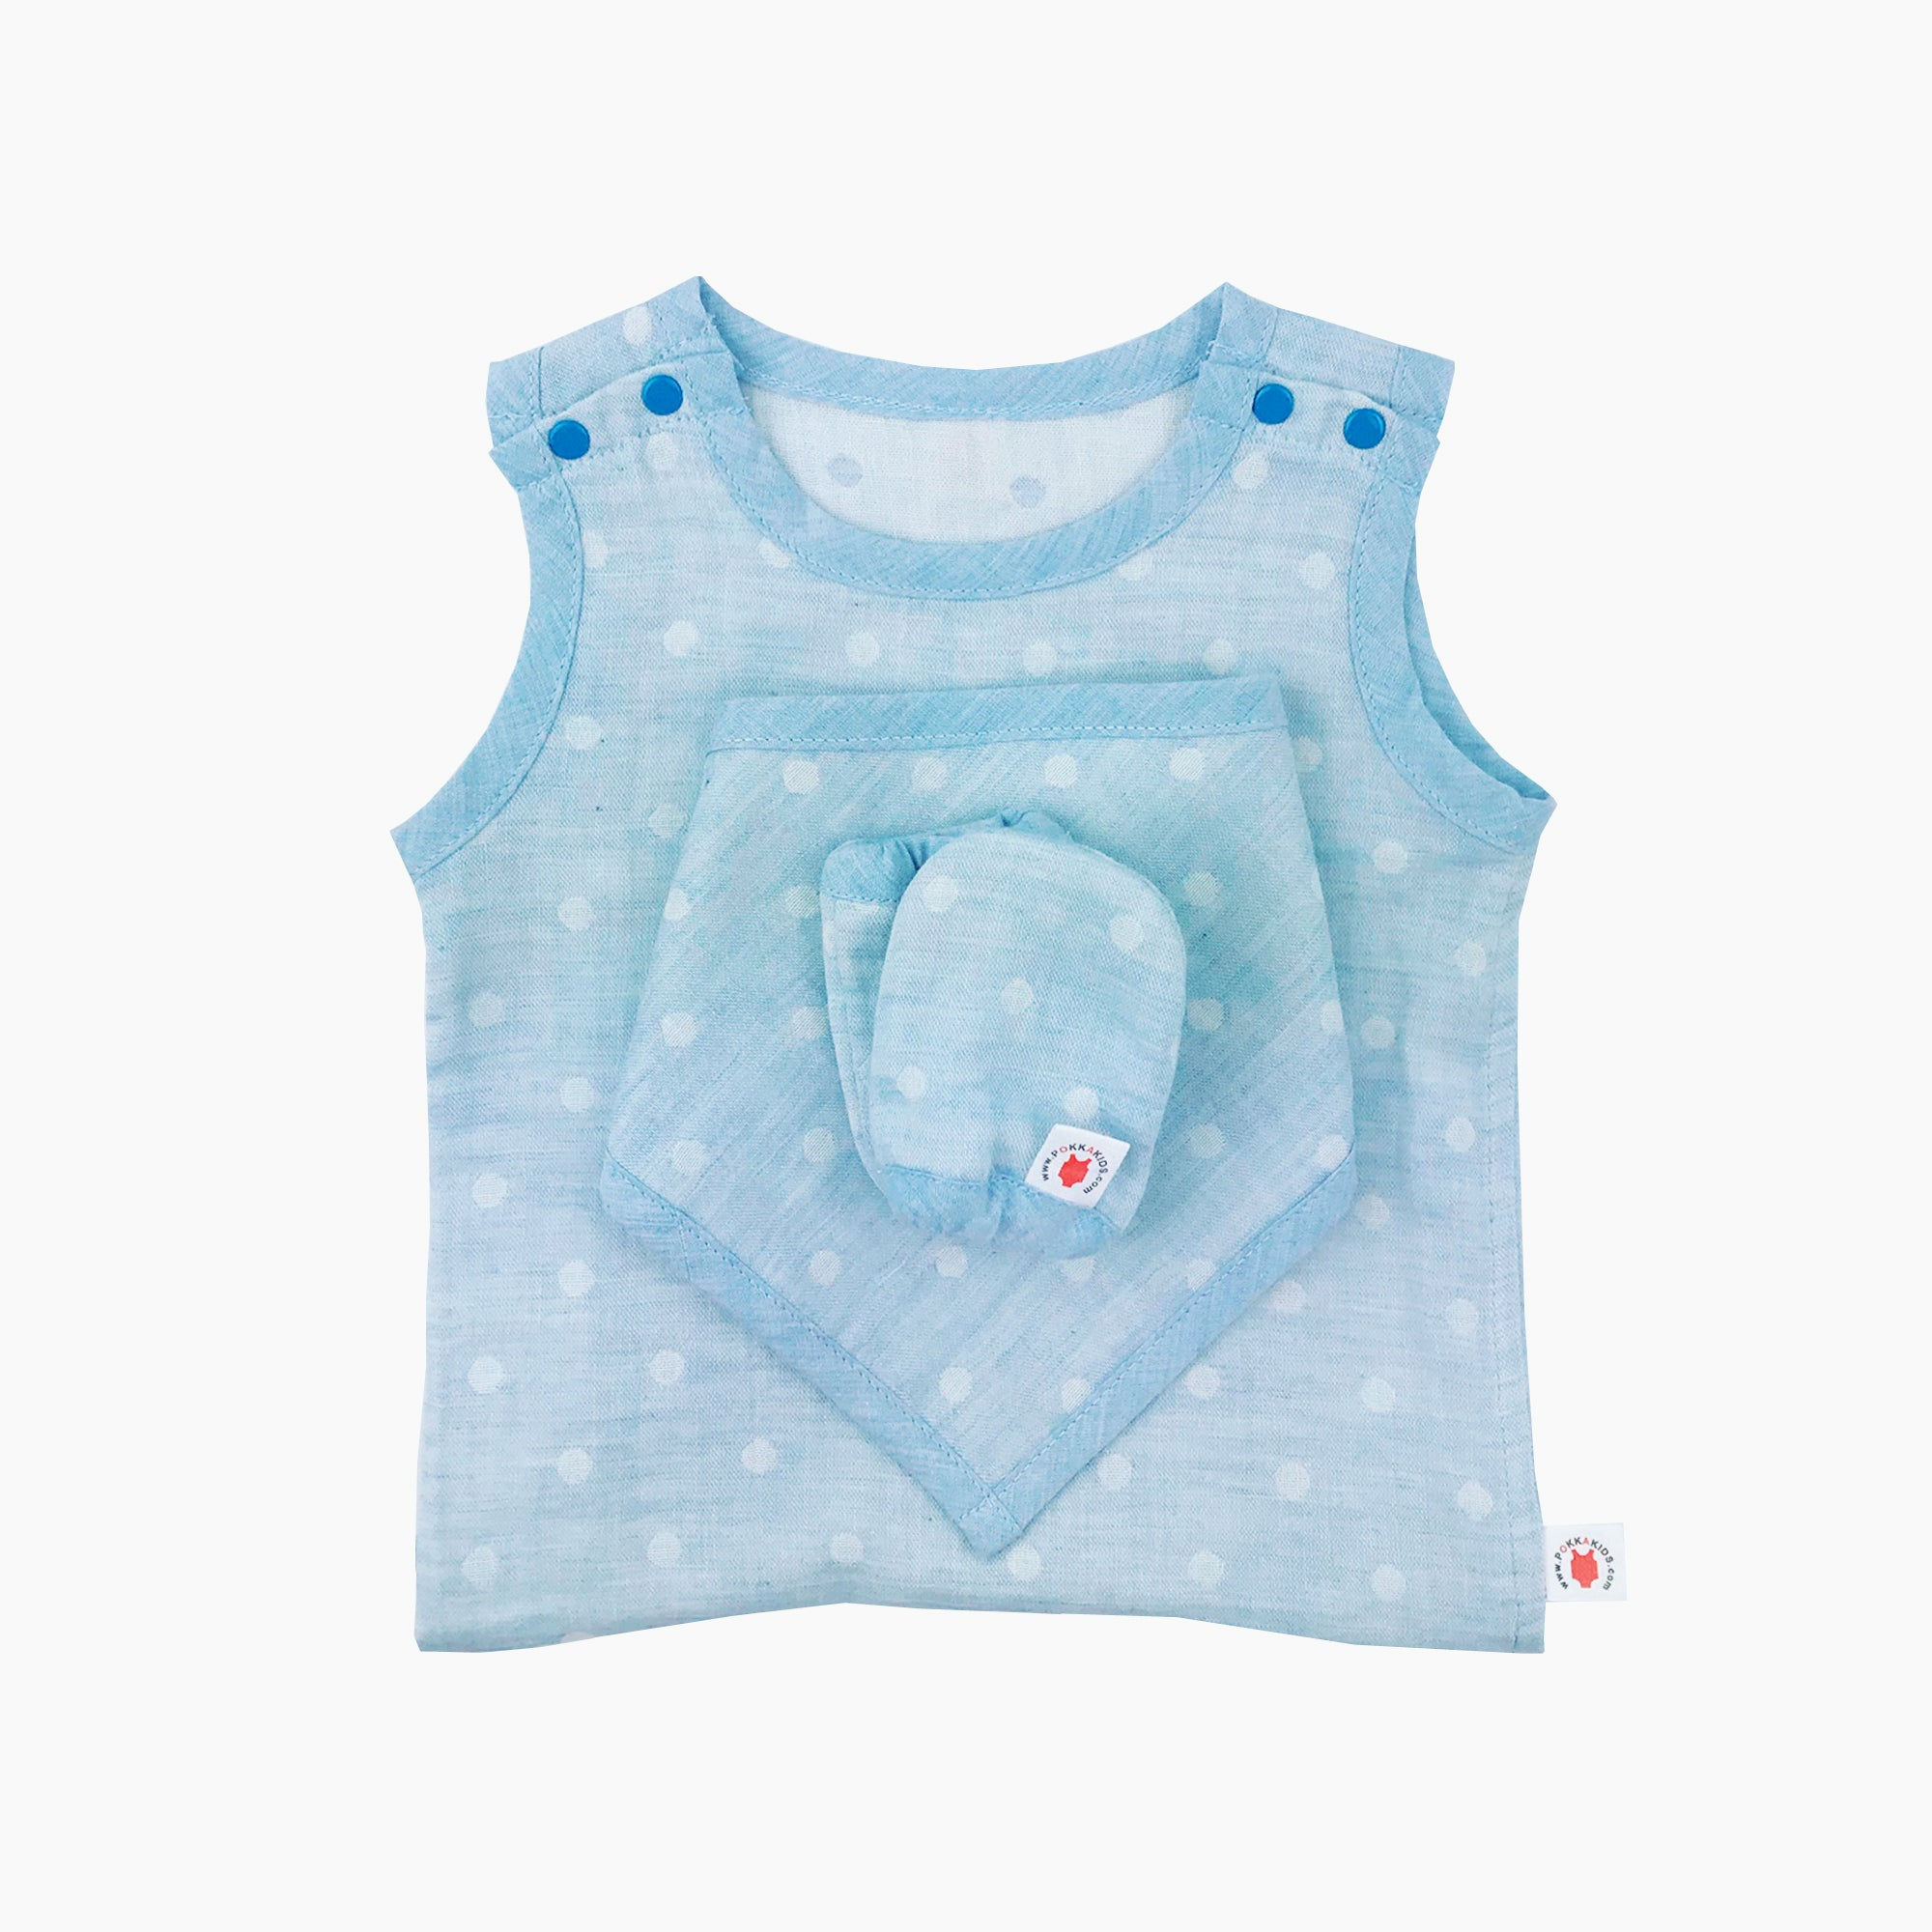 GOTS certified organic cotton baby gift includes bodysuit, bandana bib, and mittens for eczema in blue color